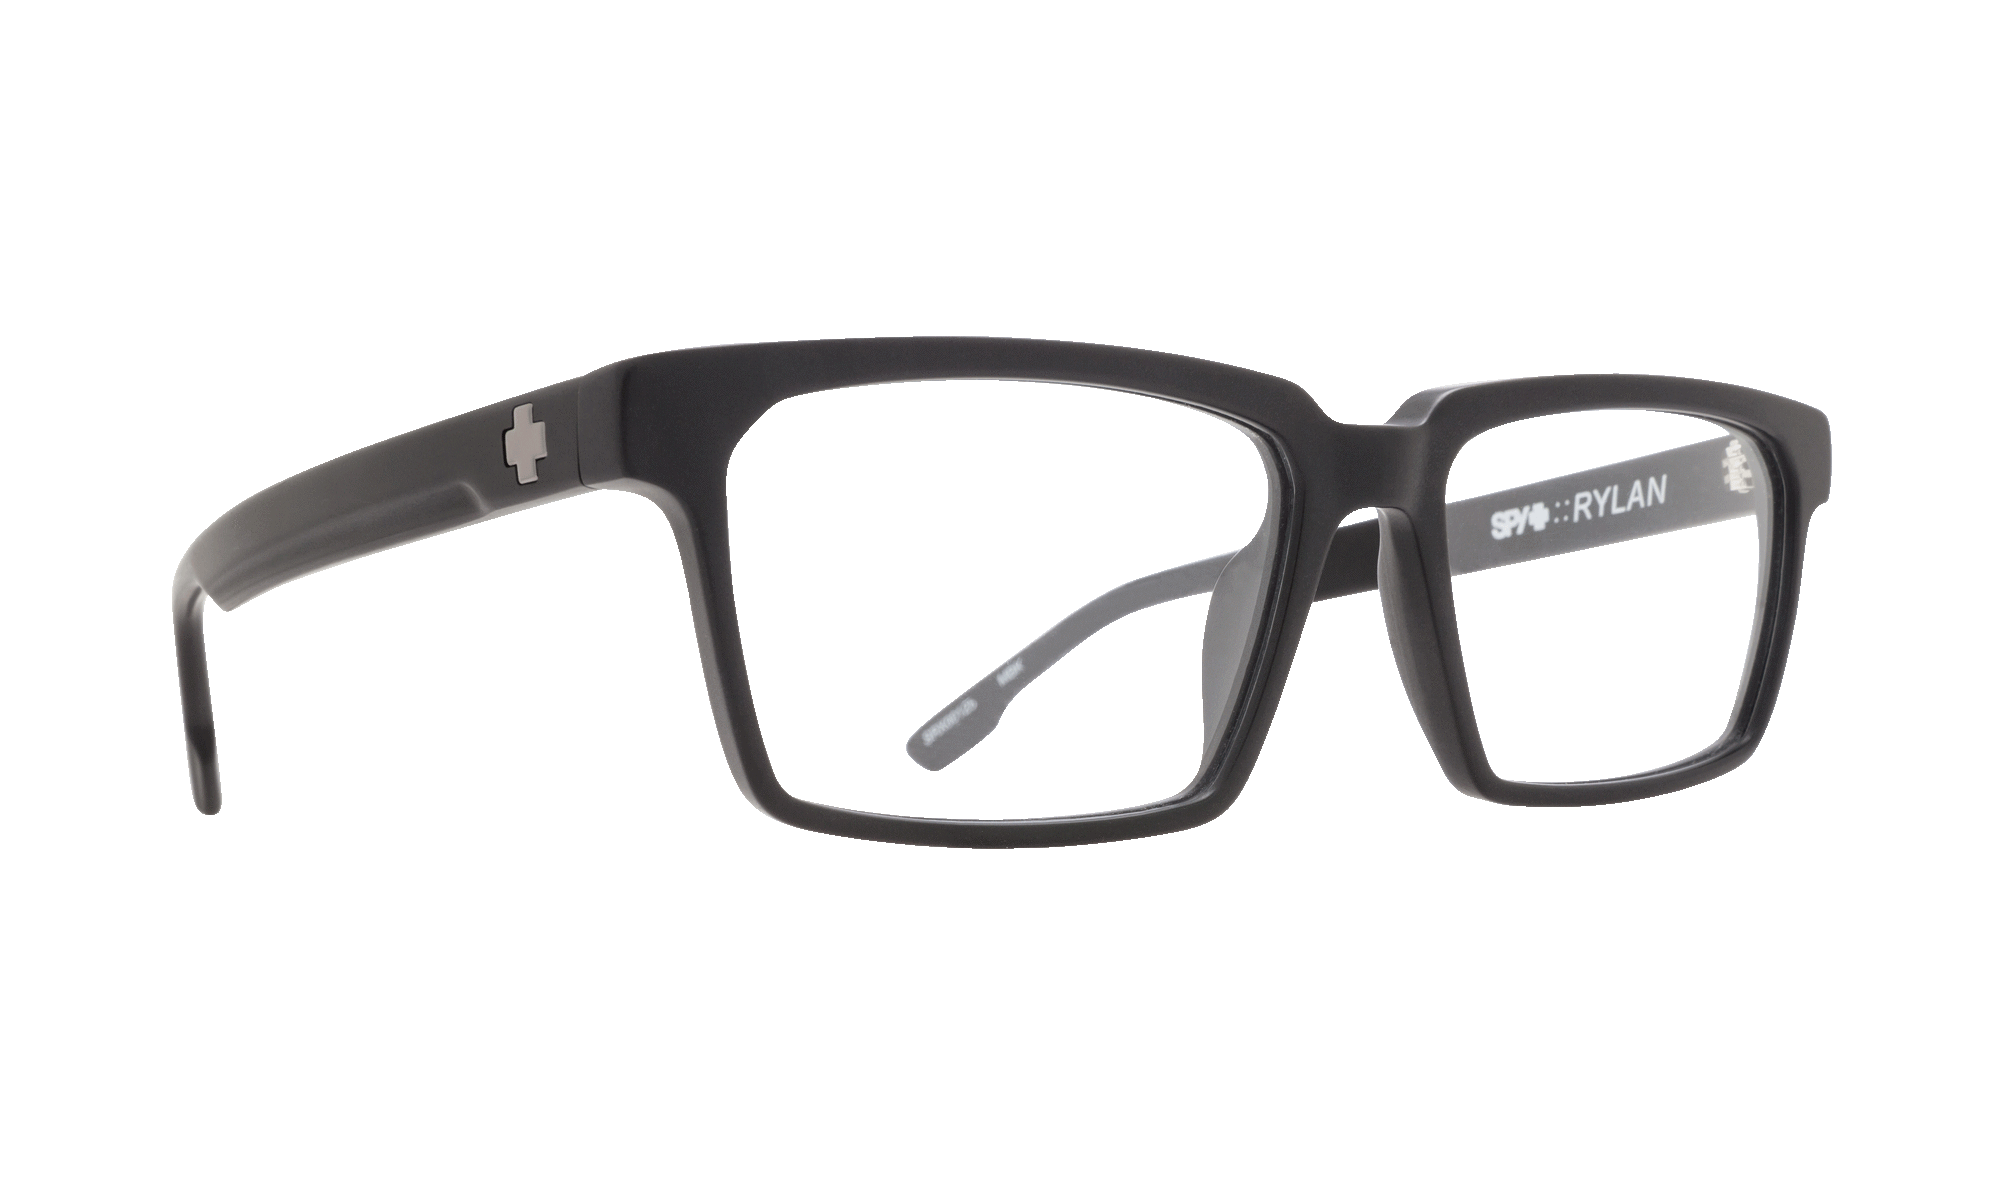 SPY RYLAN  Eyeglasses  One Color  a masculine 55-17-145